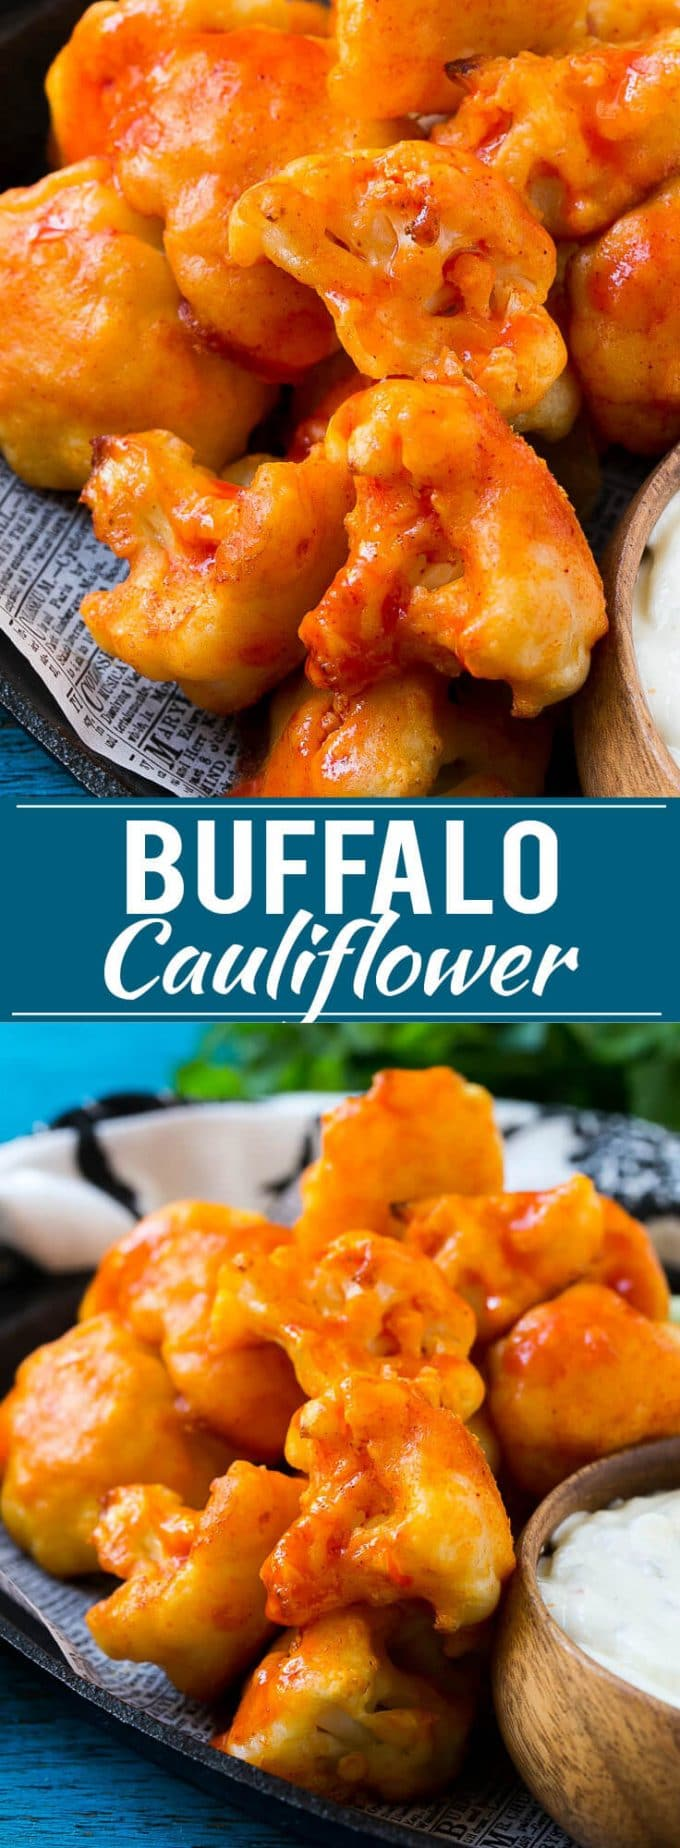 Buffalo Cauliflower Bites Recipe | Roasted Cauliflower | Buffalo Cauliflower Wings | Baked Cauliflower #cauliflower #appetizer #snack #dinneratthezoo